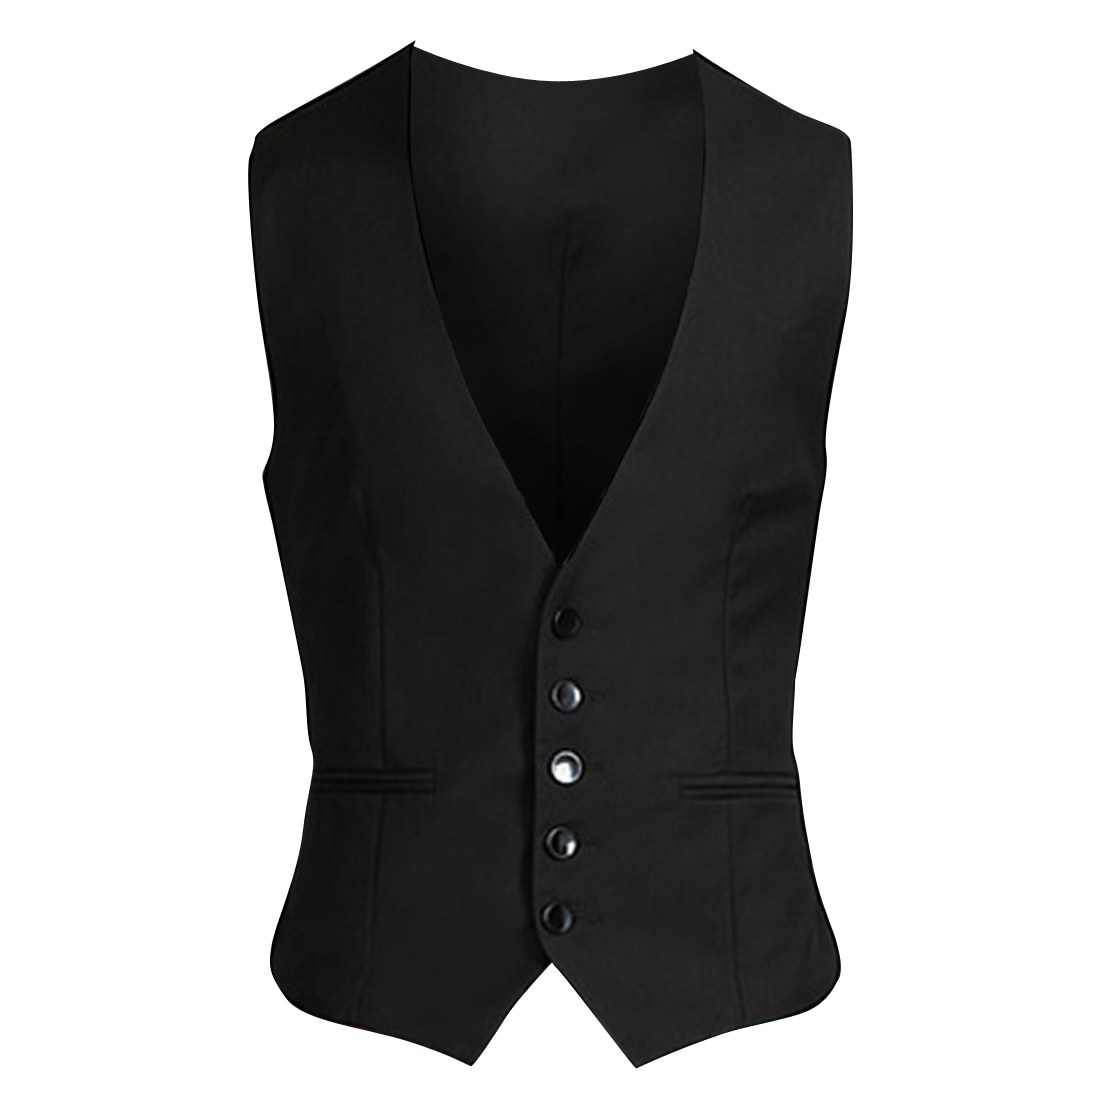 Pure Black Color Button Front Buckle Band Back Design Vest Coat for Man S